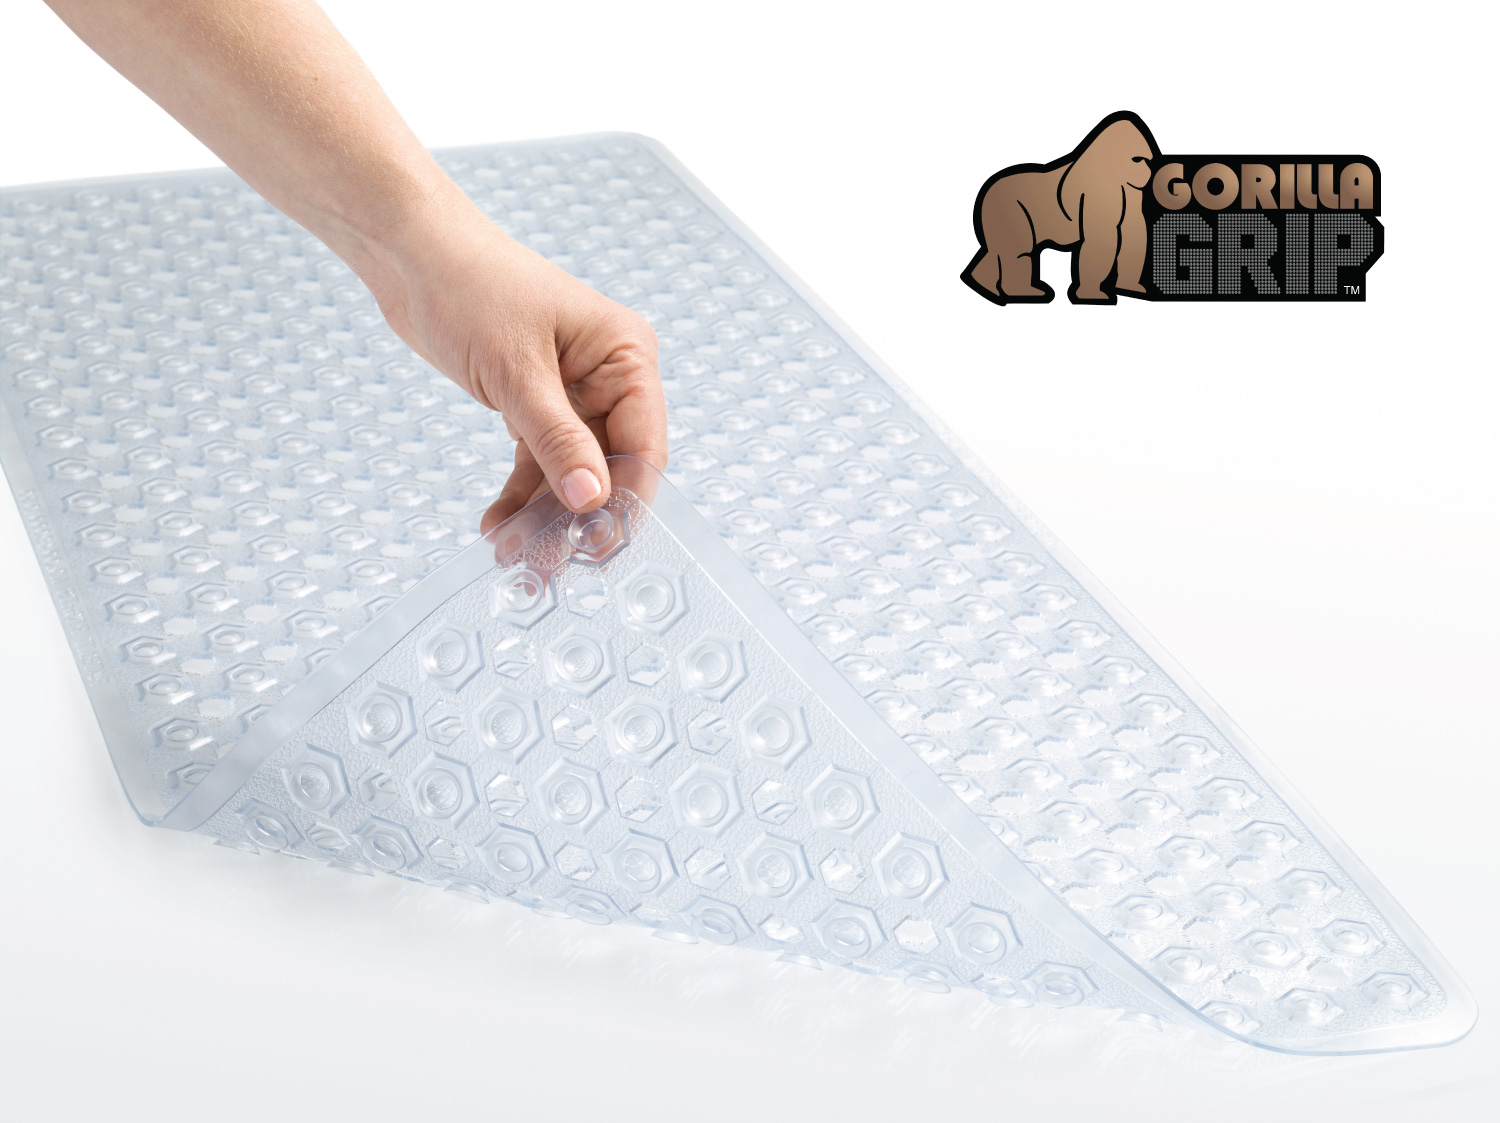 Non Slip Bathroom Mats The Original Gorilla Grip Tm Non Slip Bath Mat Fits Any